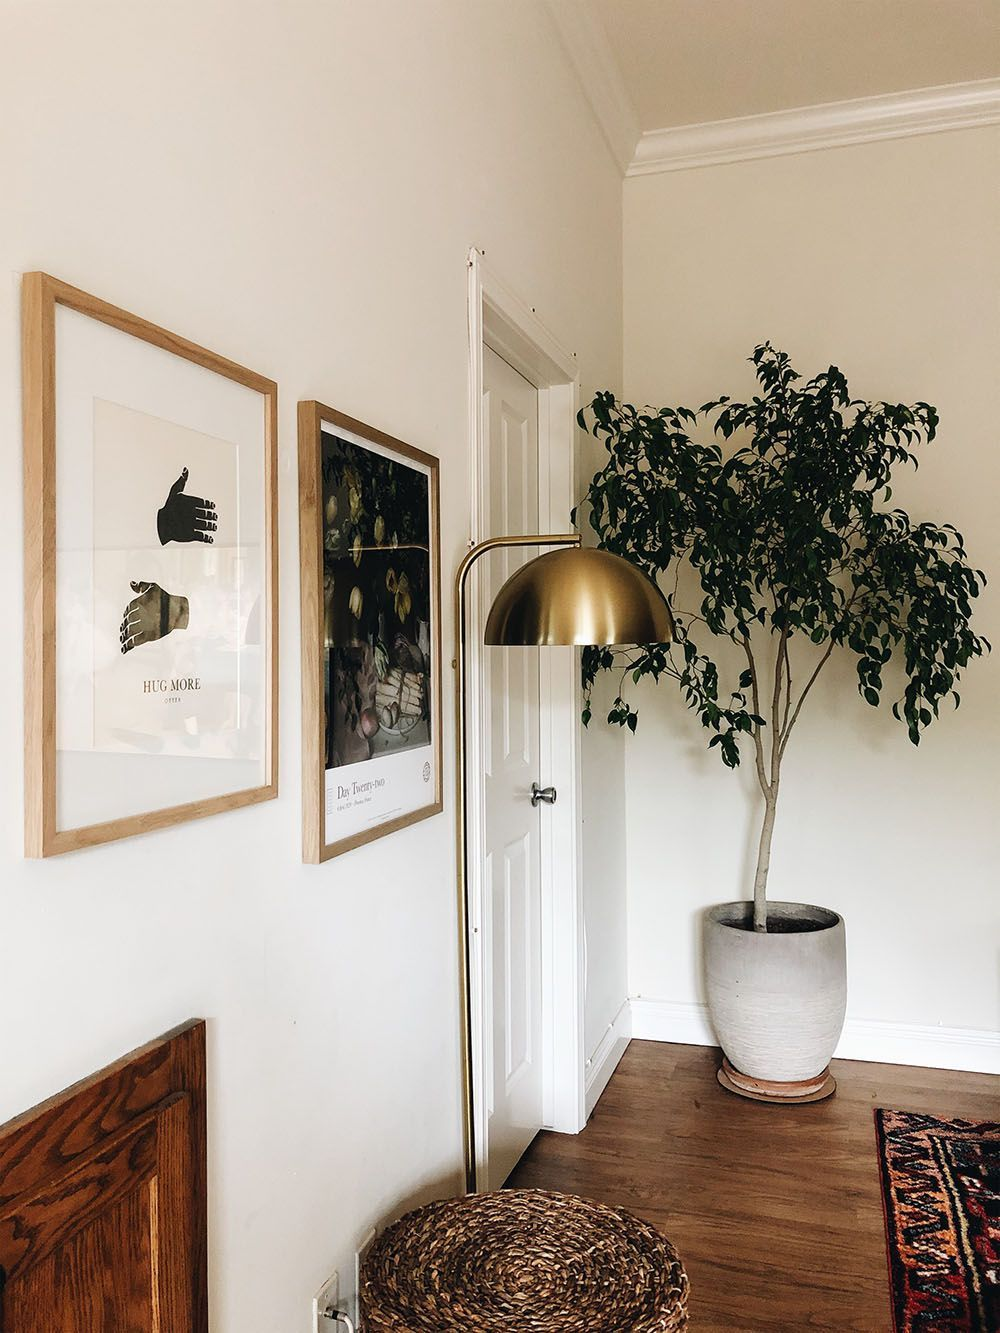 Photo of My Top 3 Home Decor Trends for 2020! – So Fresh & So Chic,  #chic #Decor #Fresh